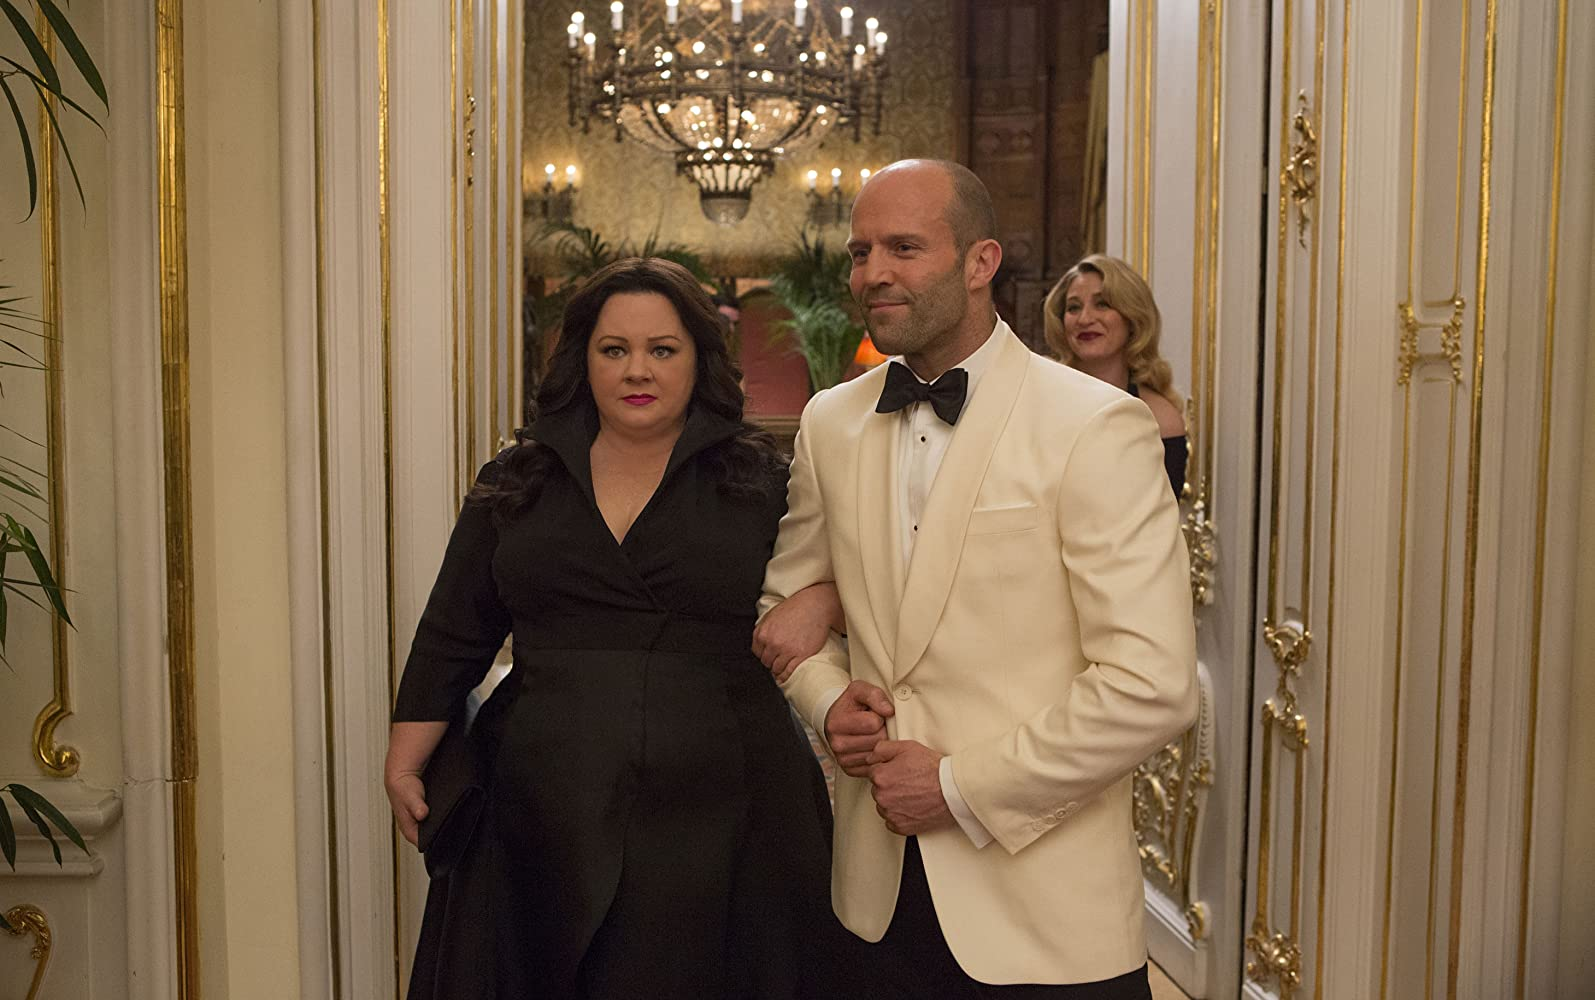 Jason Statham and Melissa McCarthy in Spy (2015)